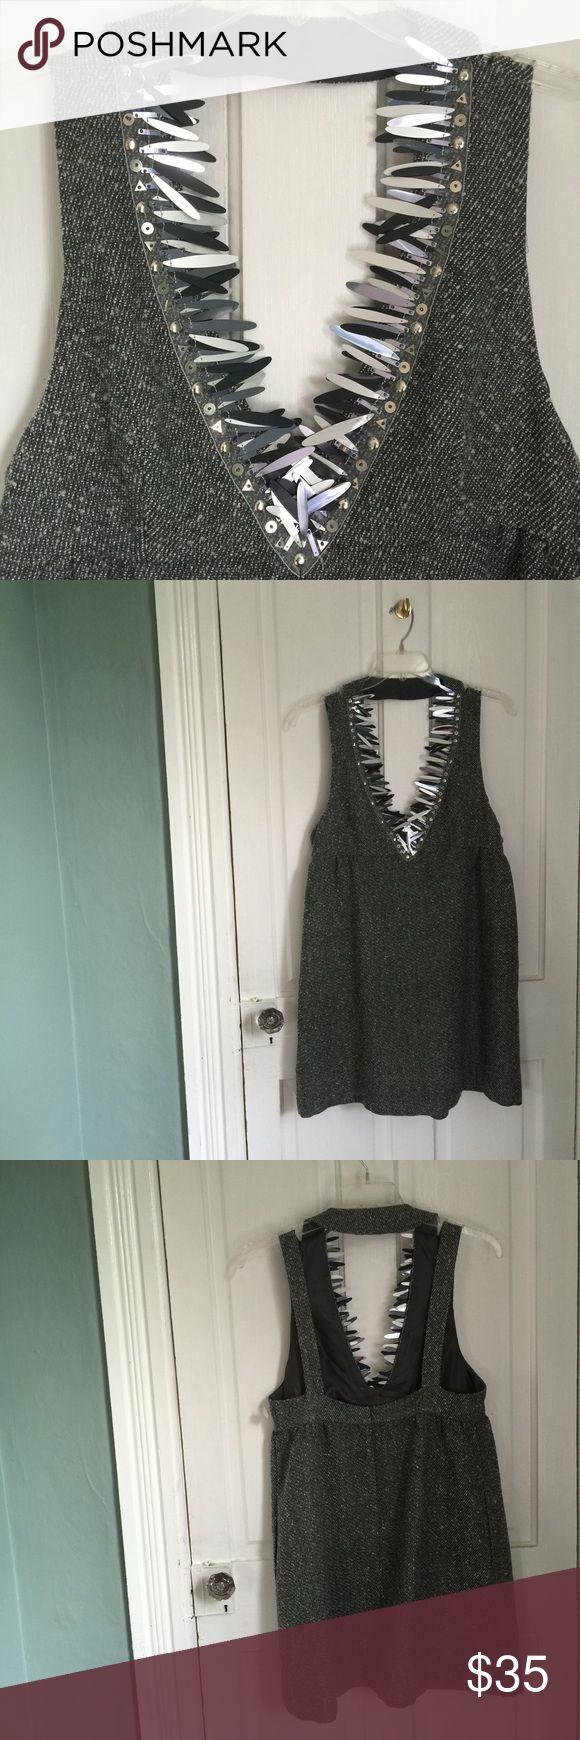 Anna Sui for Target tweed jumper NWOT Beautiful! Anna Sui for Target tweed with tasteful flecks of silver jumper with Dramatic sequined neckline! A stunning piece. Perfect for your holiday party! Never worn! Anna Sui Dresses Mini